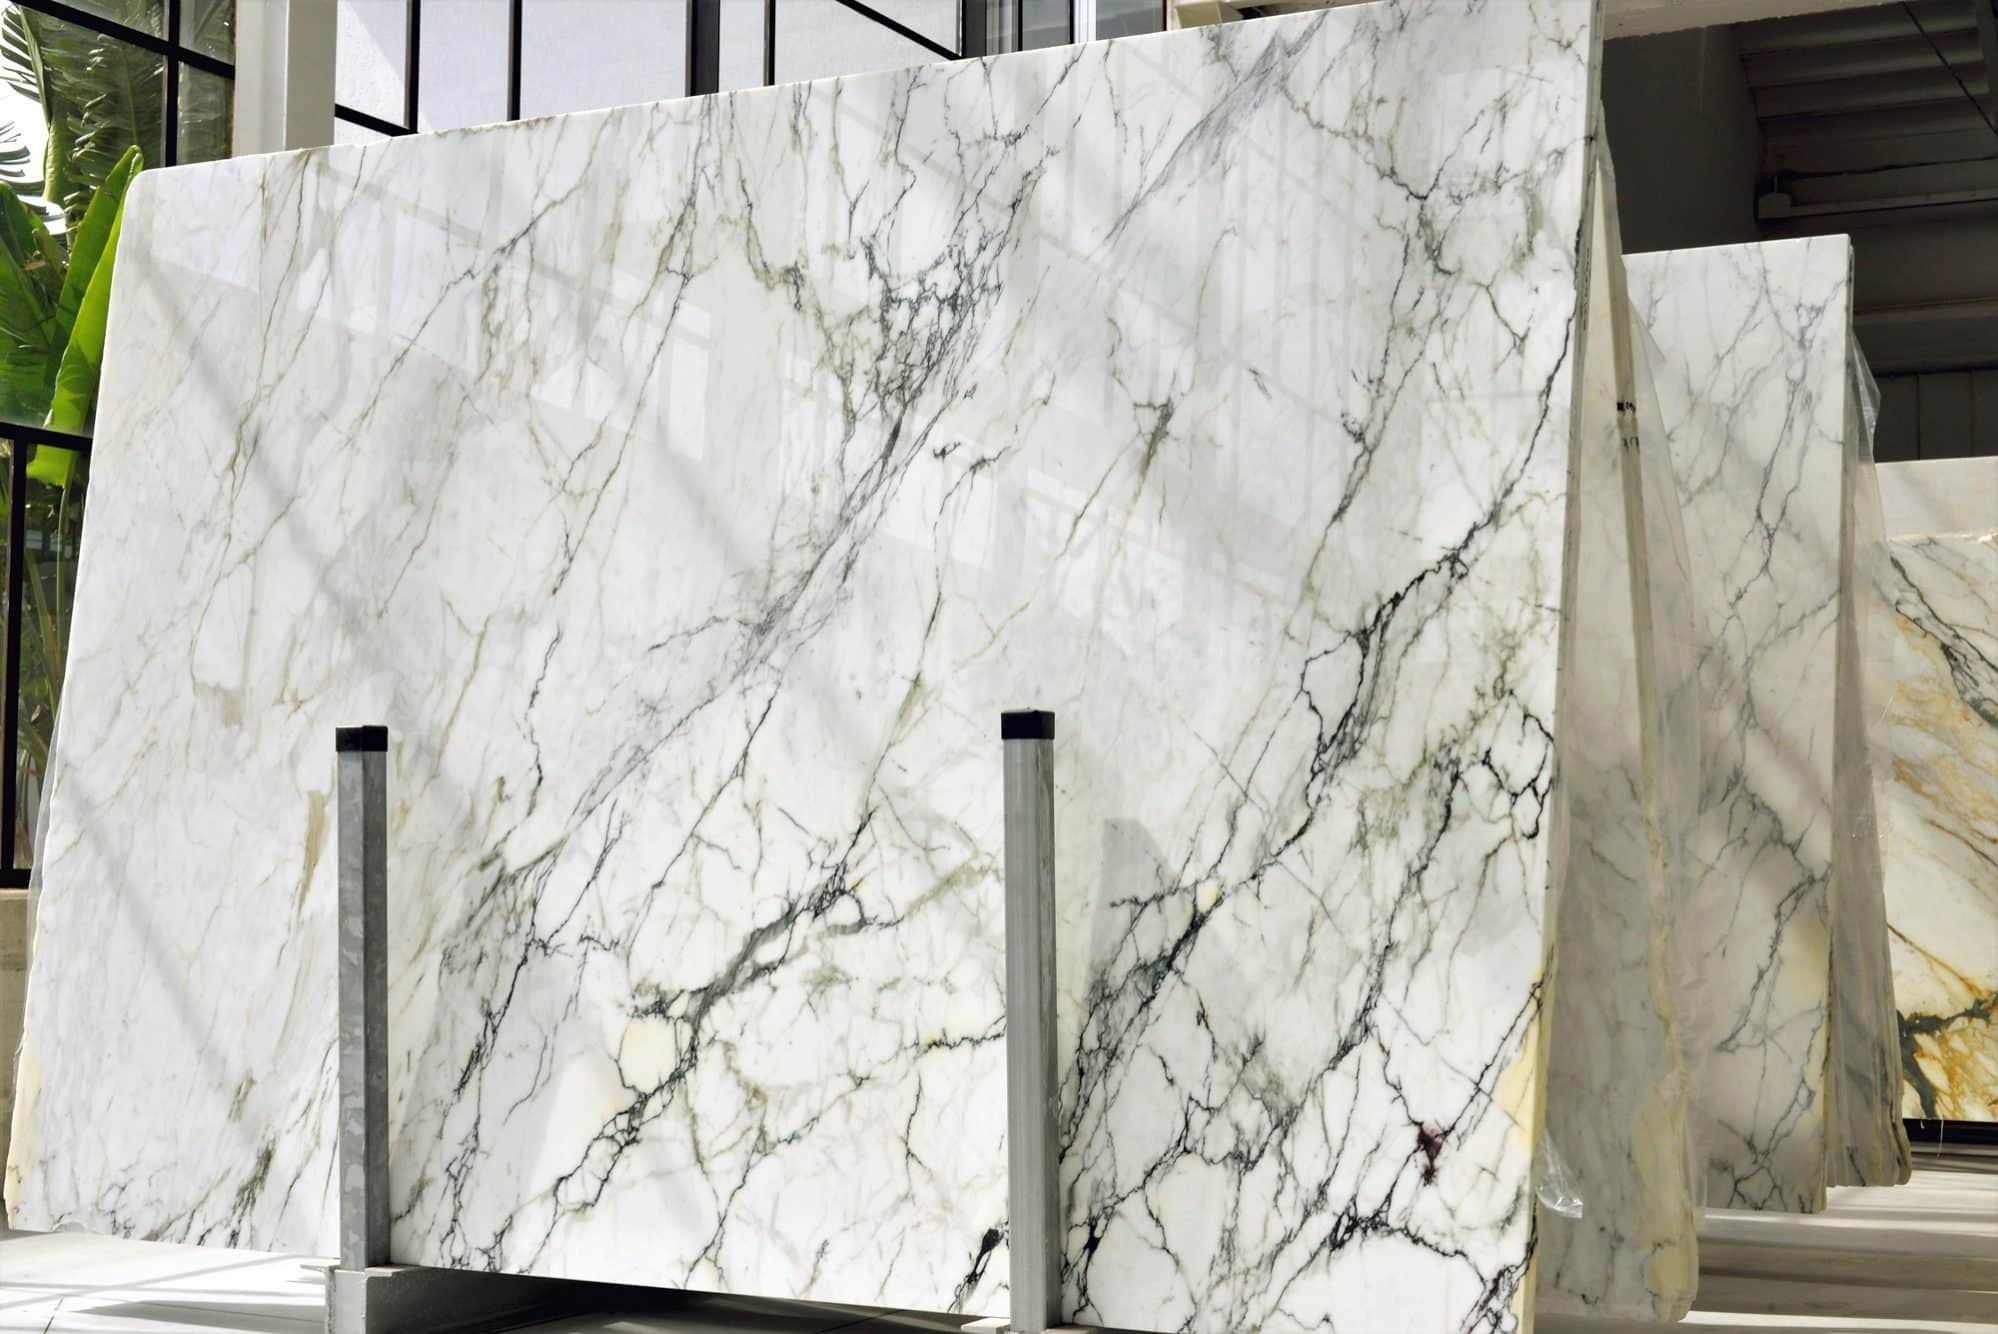 Natural marble stone slabs in a warehouse